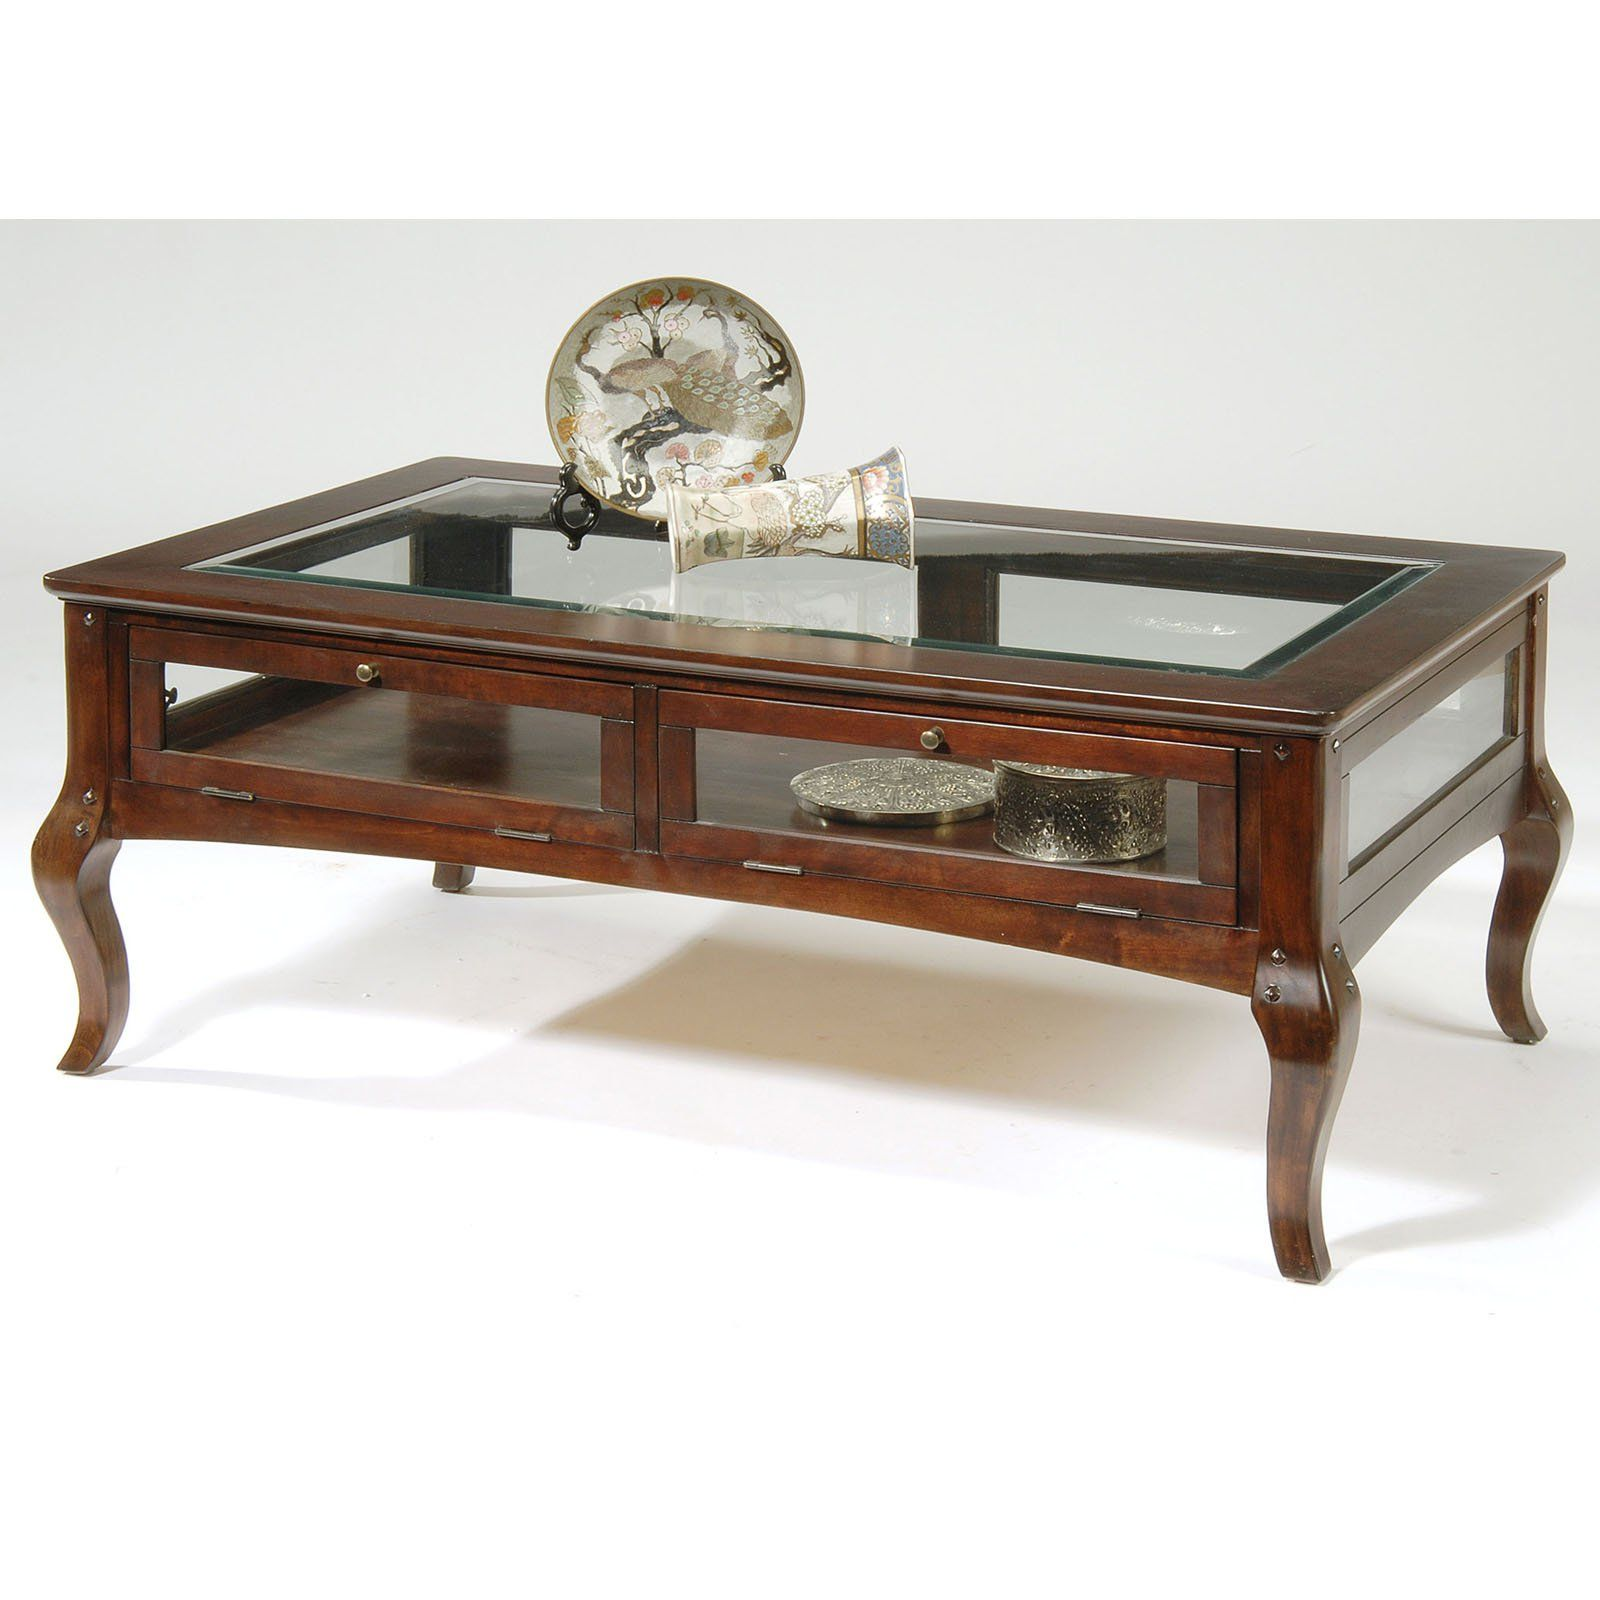 Find Out More About Amazing Shadow Box Coffee Table Ideas And Plans Which Can Make You